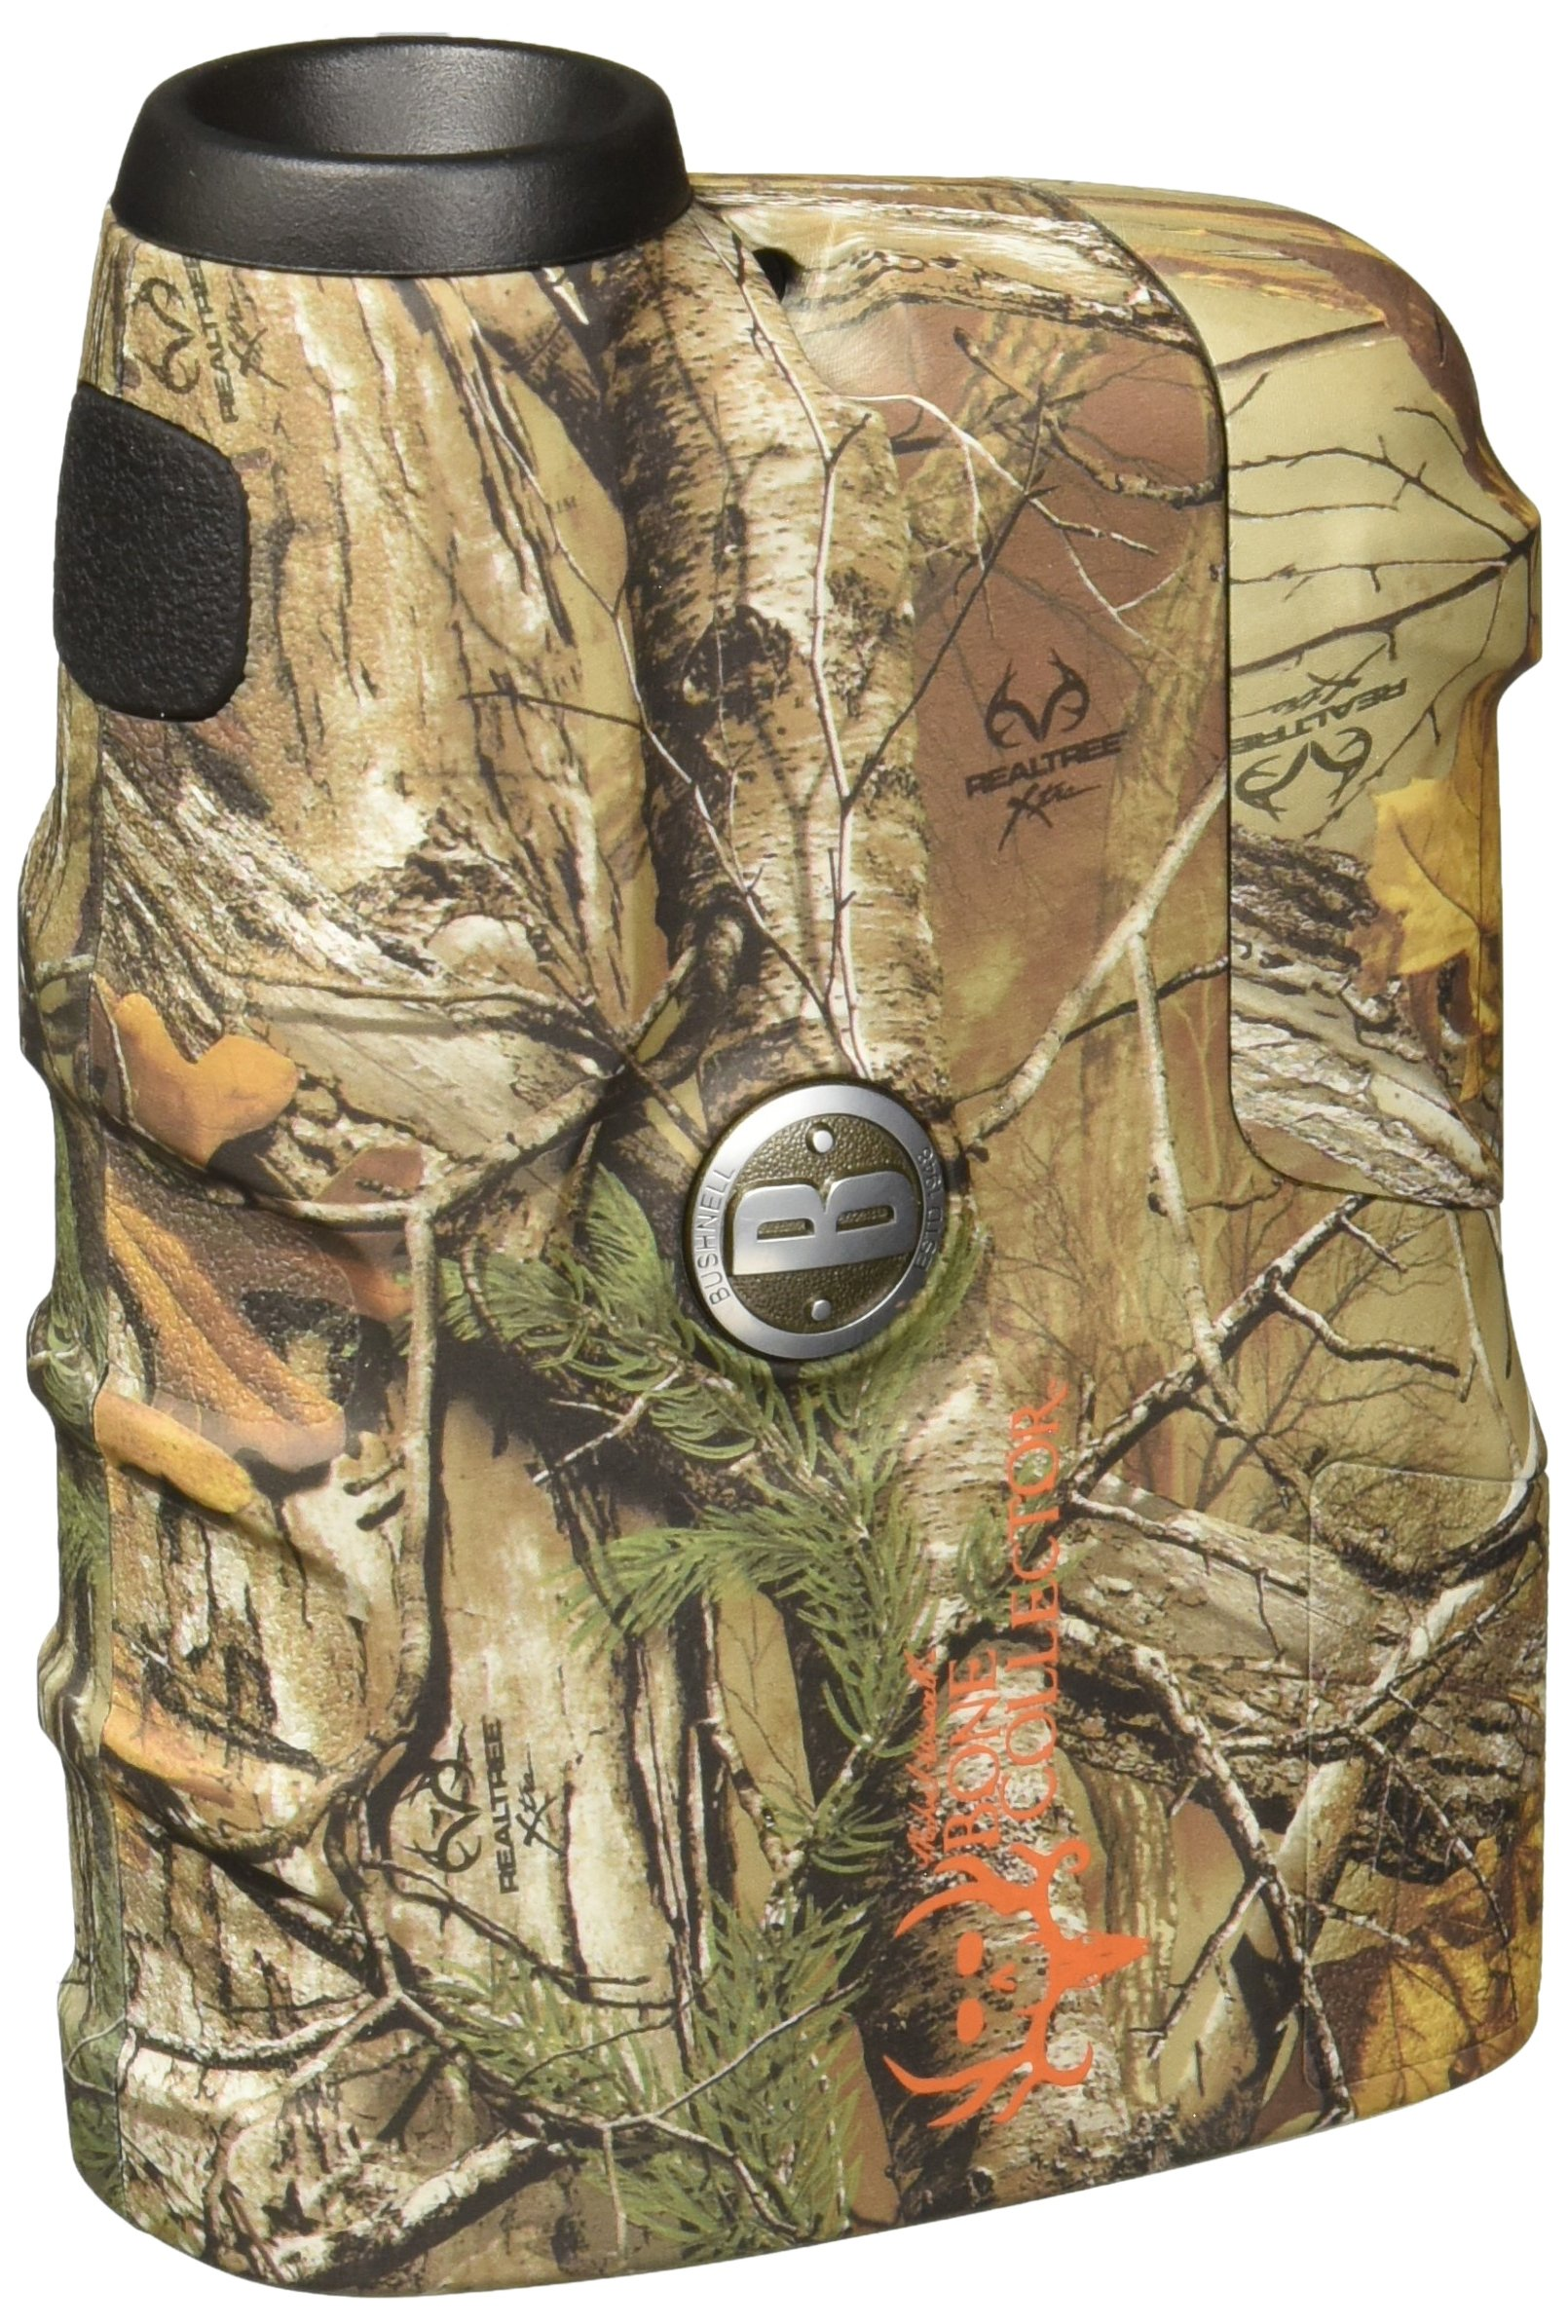 Bushnell 202208 Bone Collector Edition 4x Laser Rangefinder, Realtree Xtra Camo, 20mm by Bushnell (Image #3)